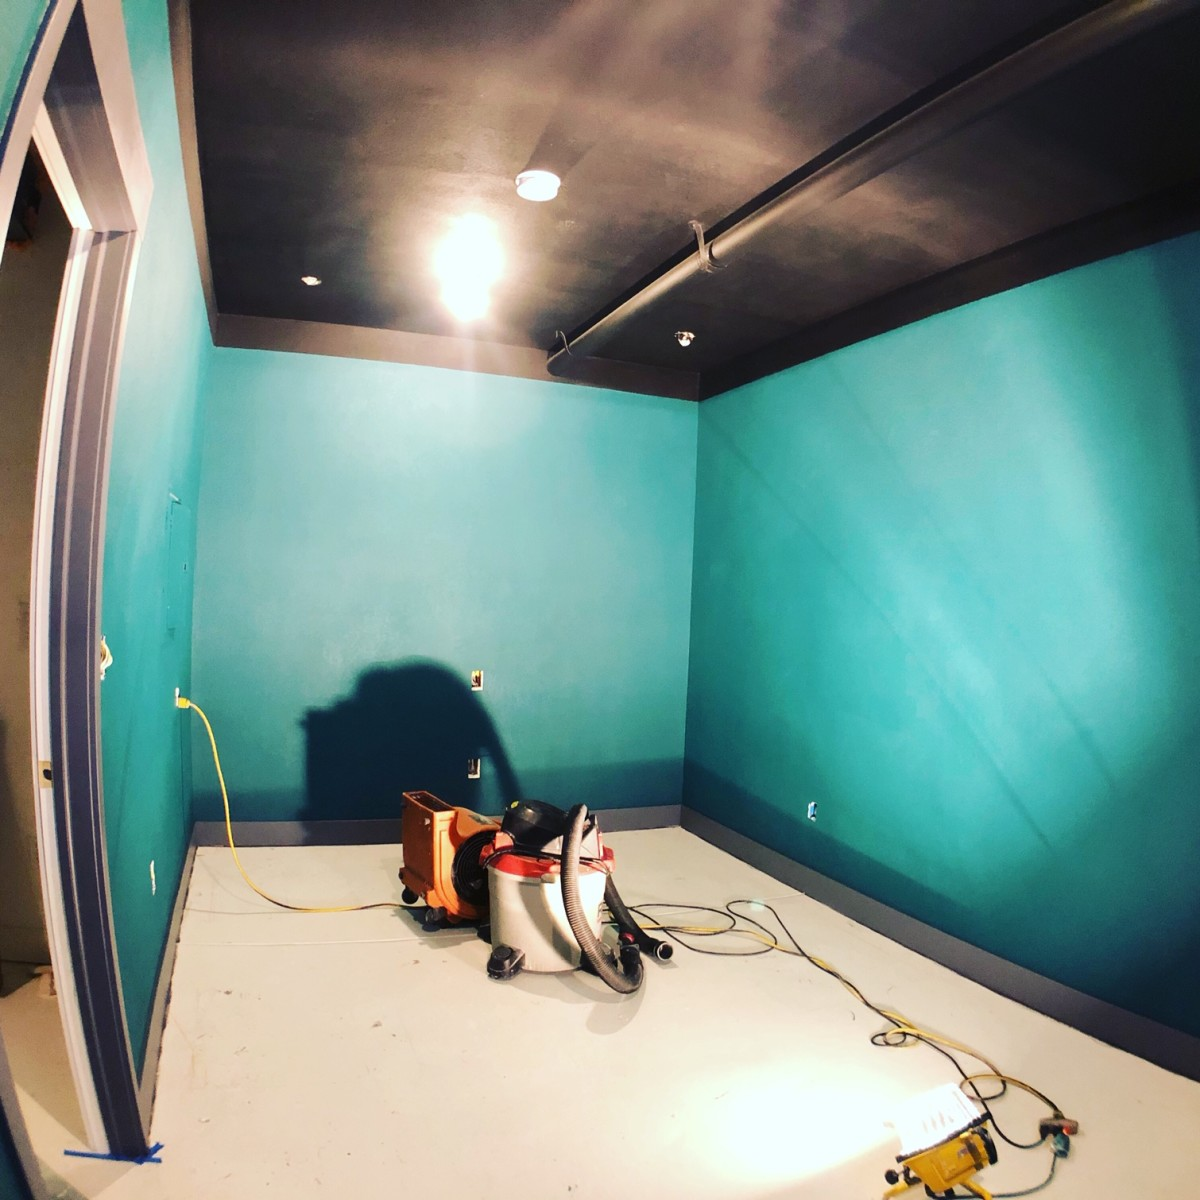 Magnetic Studio's gets a paint job, some trim and a bit of track lighting...